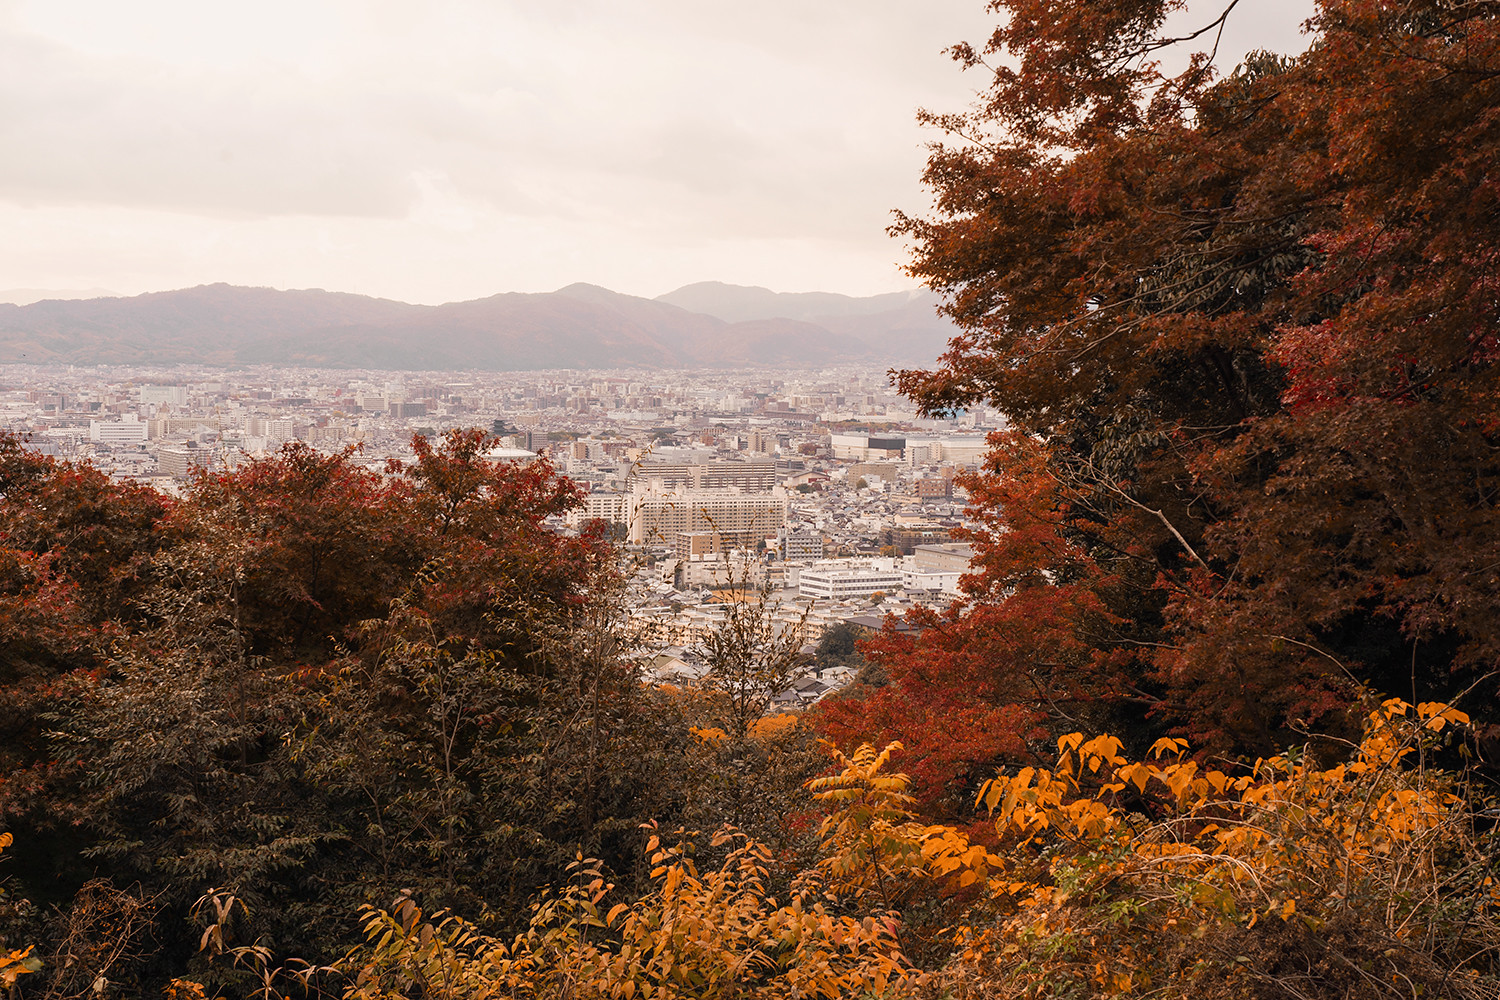 40kyoto-mtinari-summit-landscape-japan-travel